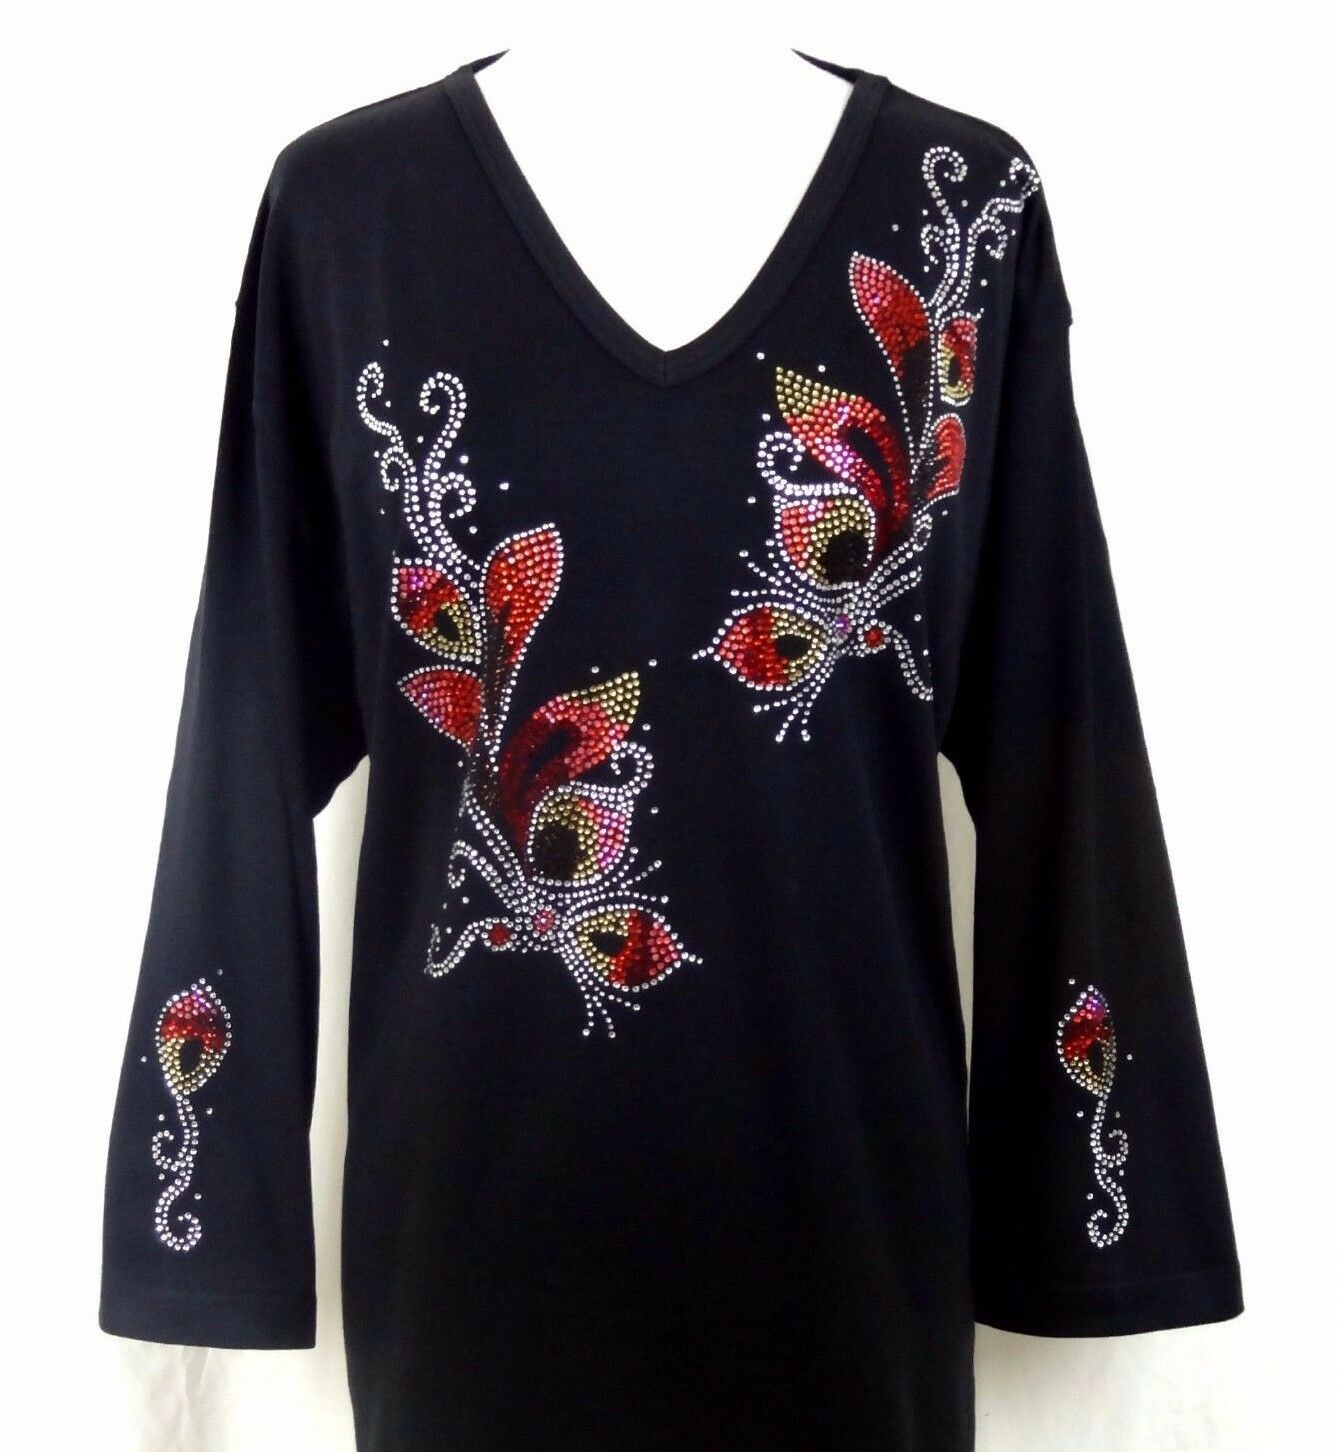 LARGE Hand Embellished All Rhinestone Fancy Autumn Floral Design Long Top